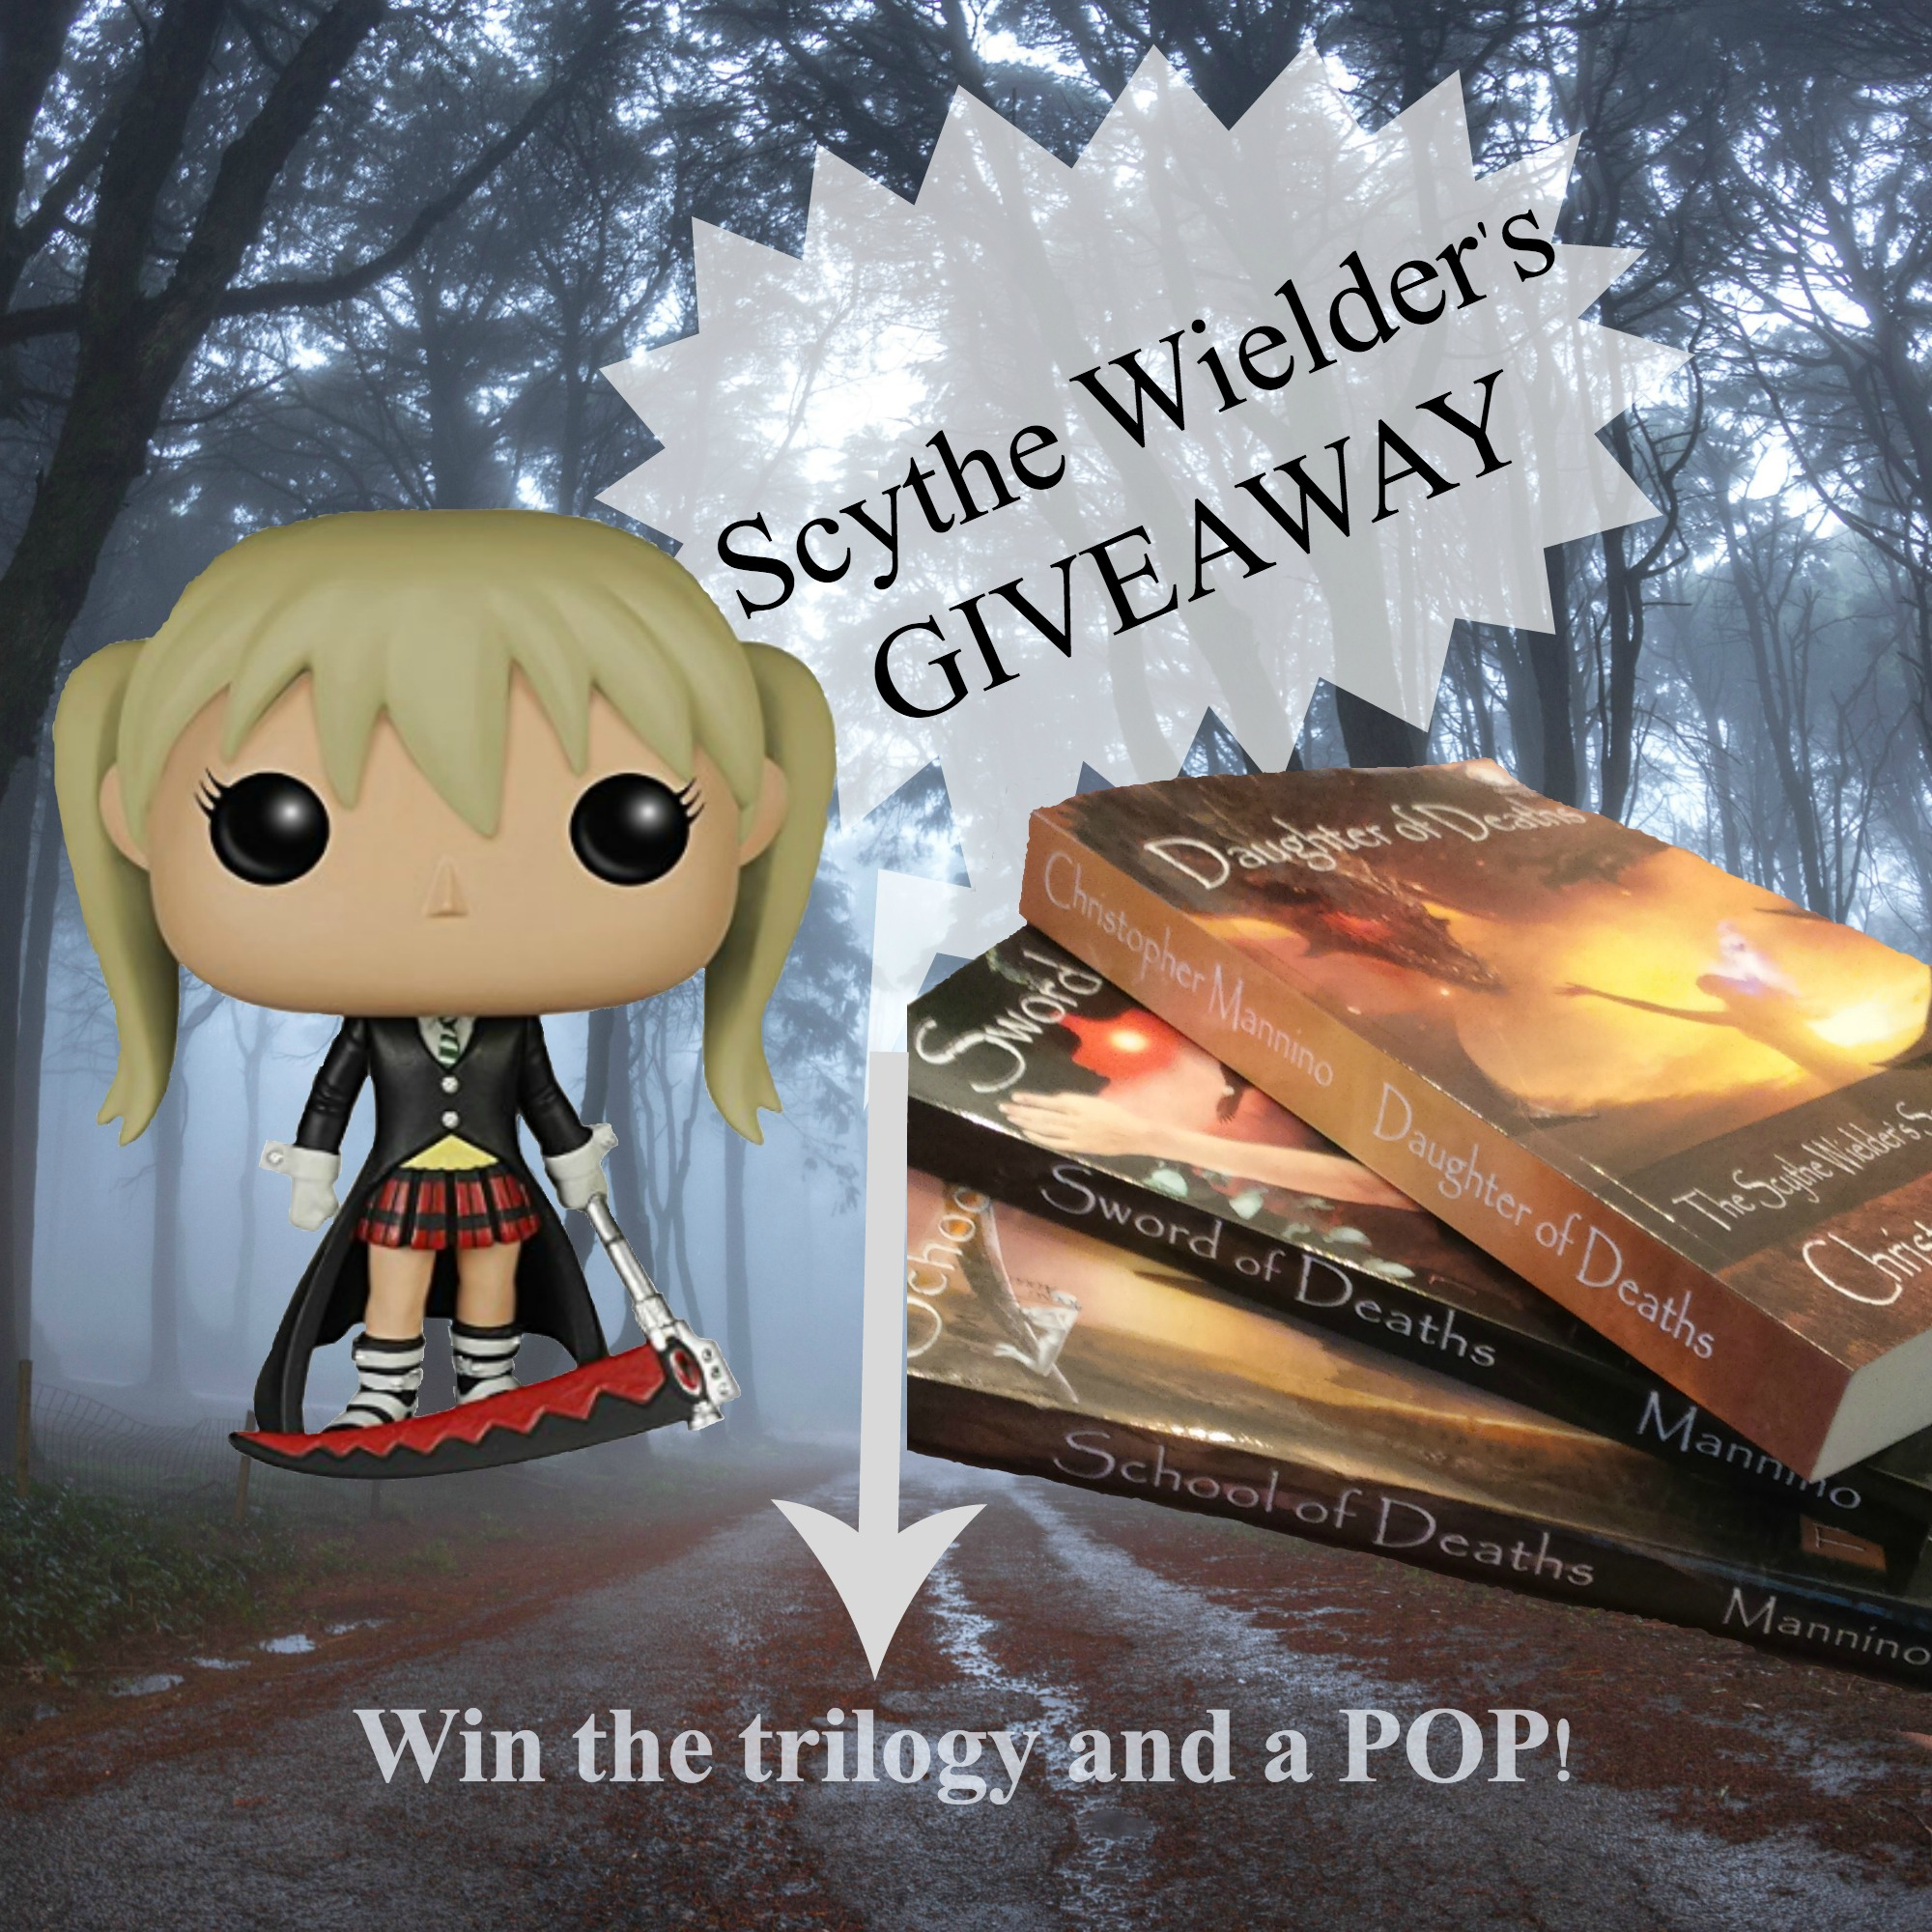 THE SCYTHE WIELDER'S SECRET Trilogy in paperback and a POP Figure!